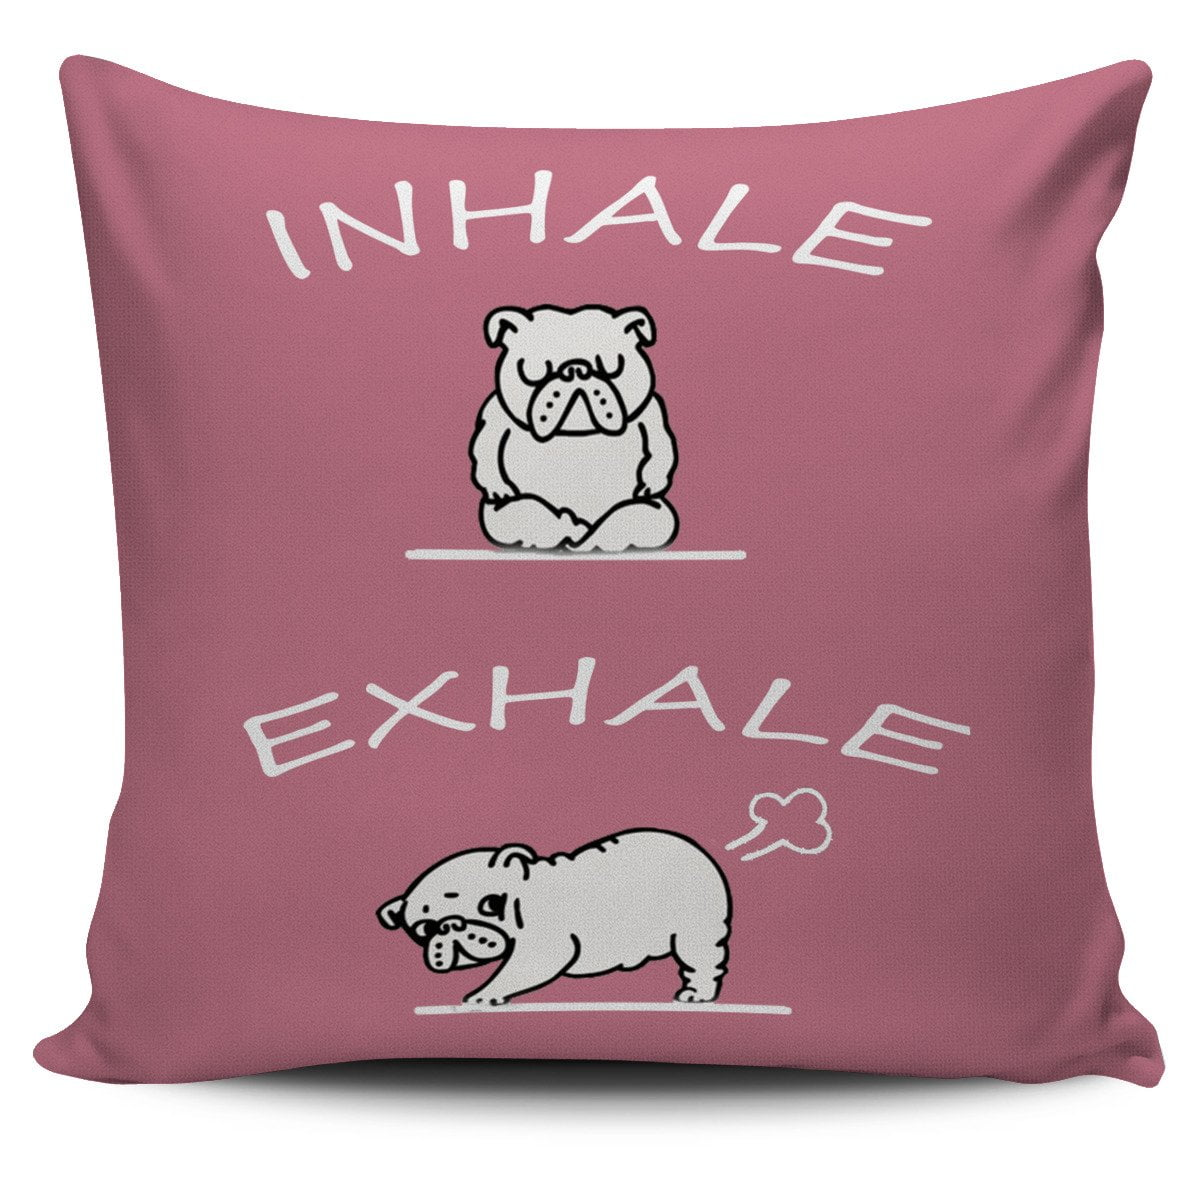 Inhale Exhale Pillow - frenchie Shop